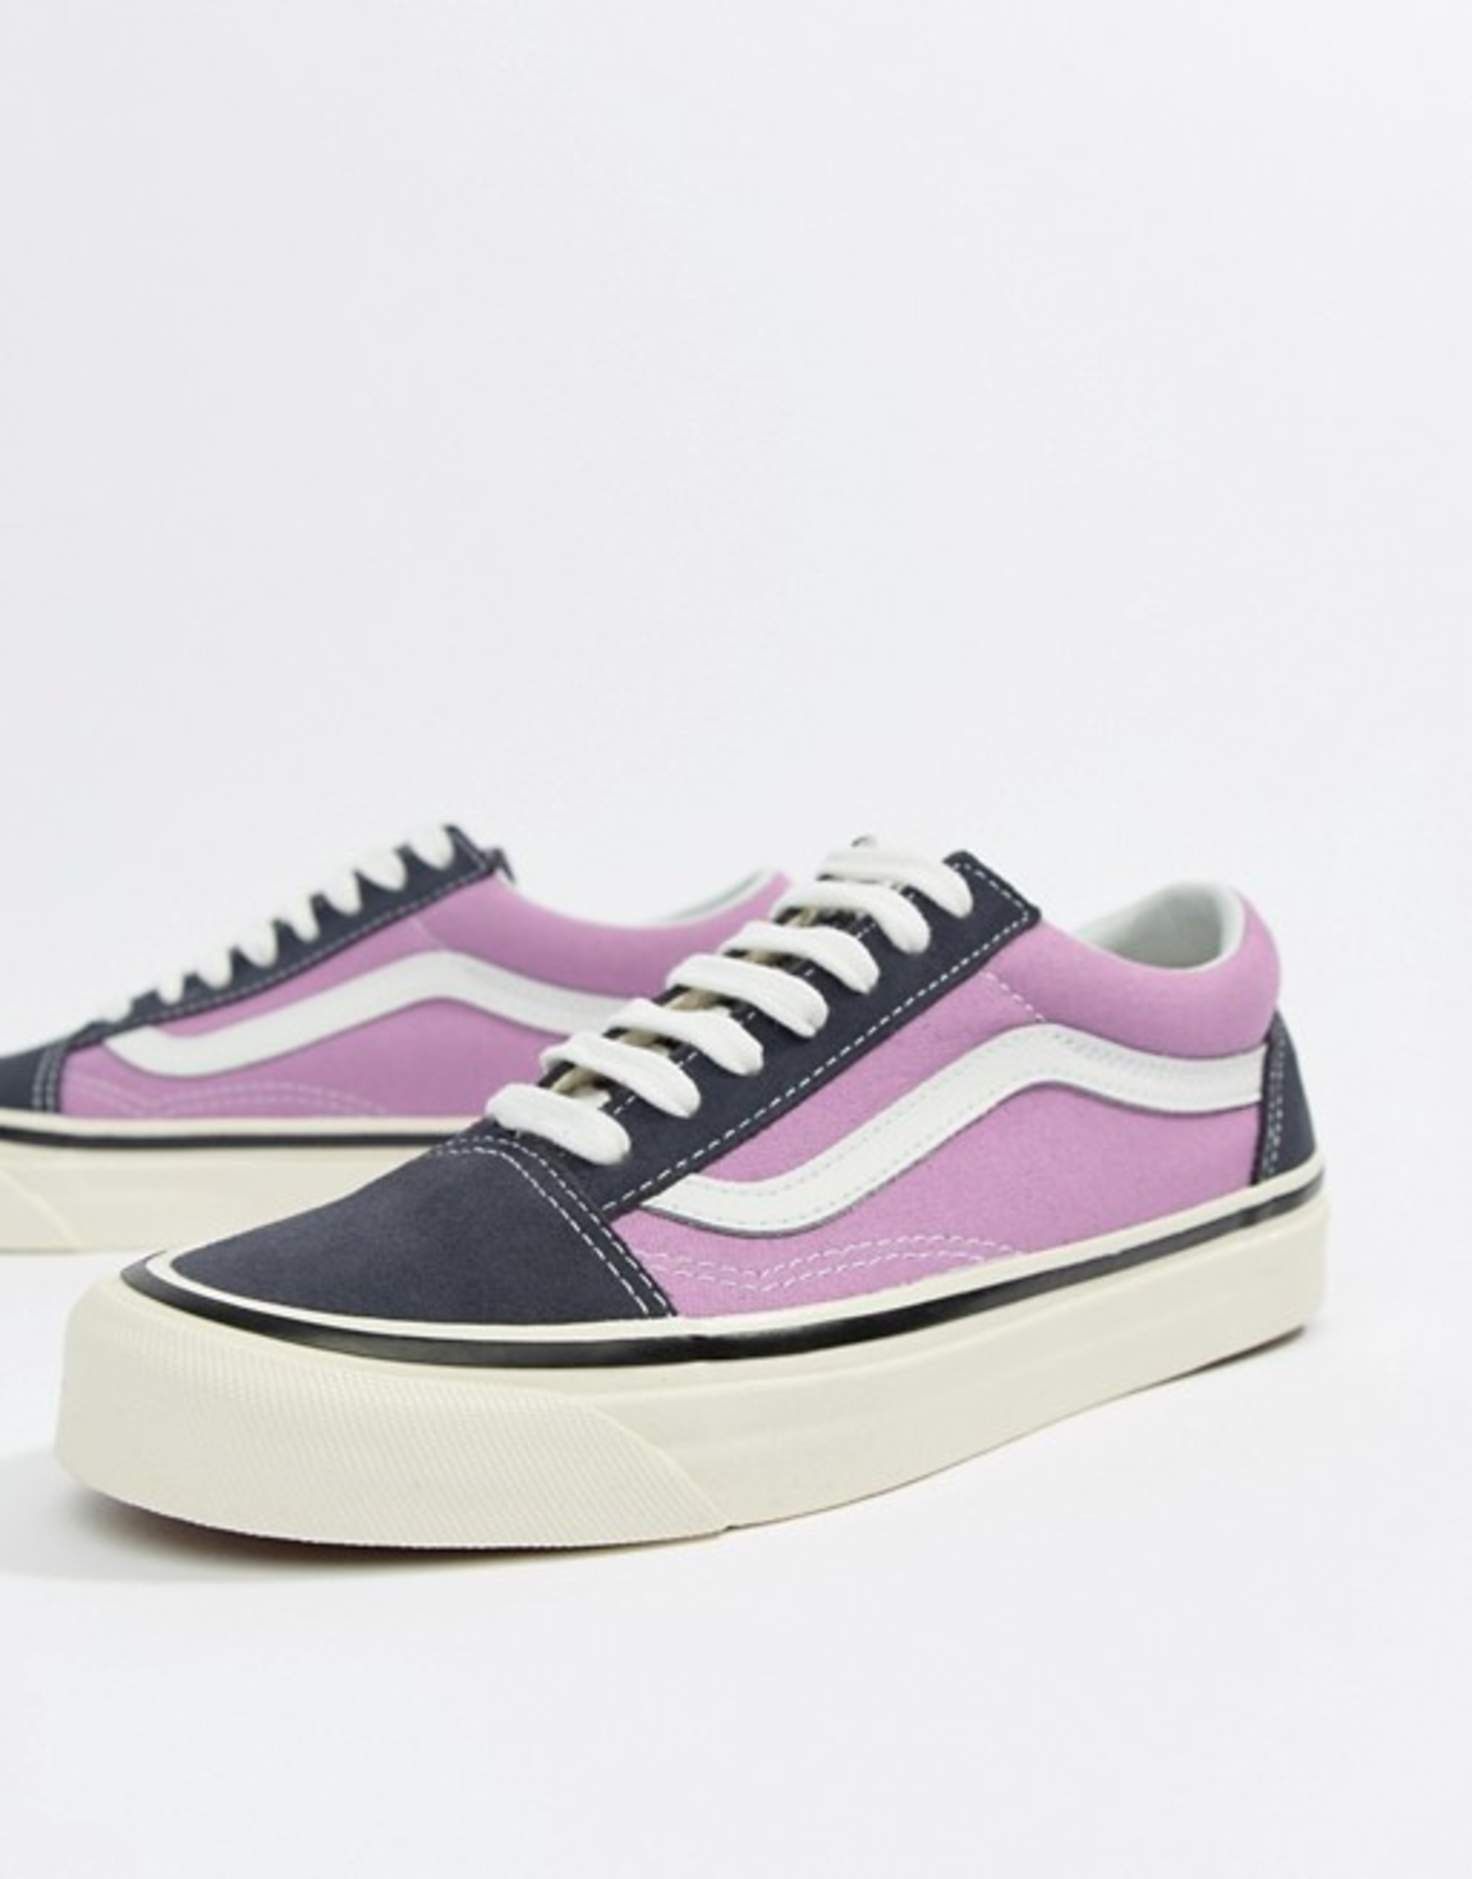 Vans Anaheim Old Skool Sneakers In Og Navy And Lilac at asos.com ... 9fb5f440e